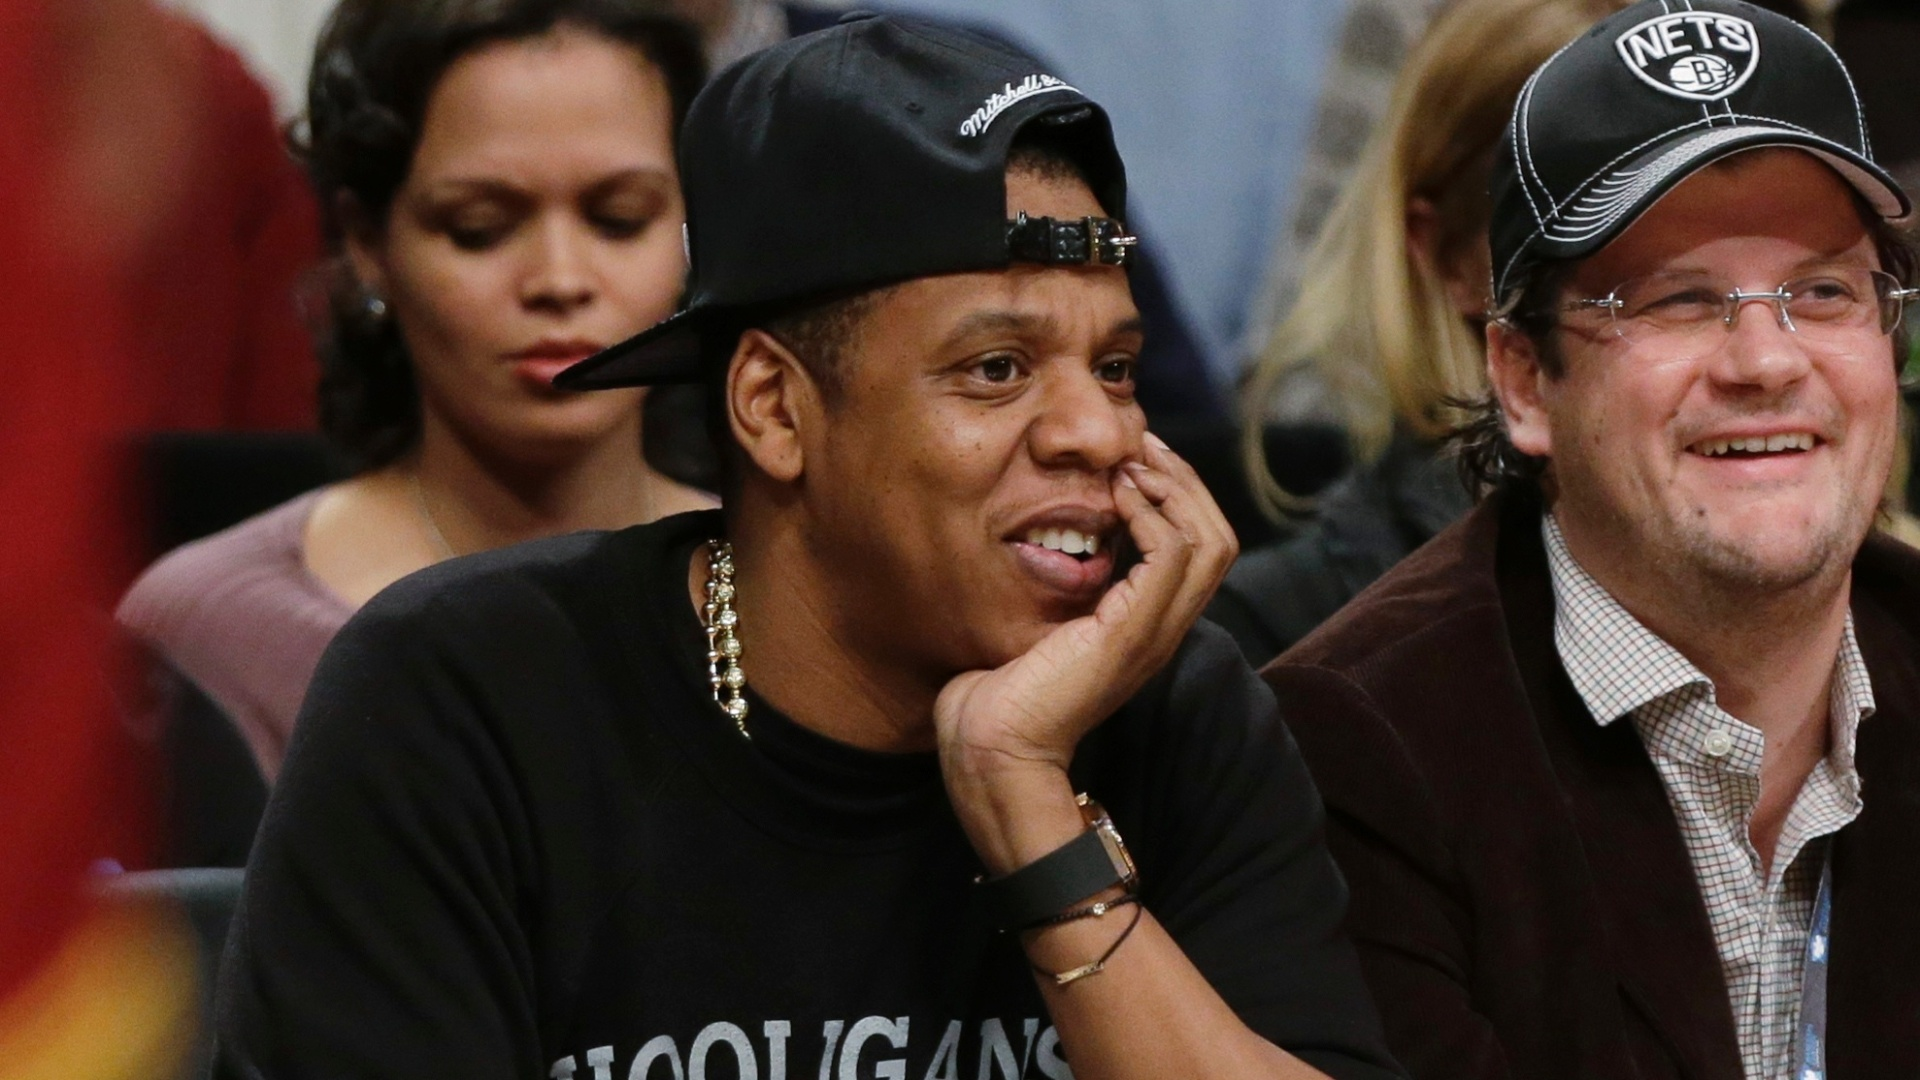 O astro Jay-Z acompanha a partida entre Brooklyn Nets e Cleveland Cavaliers pela NBA